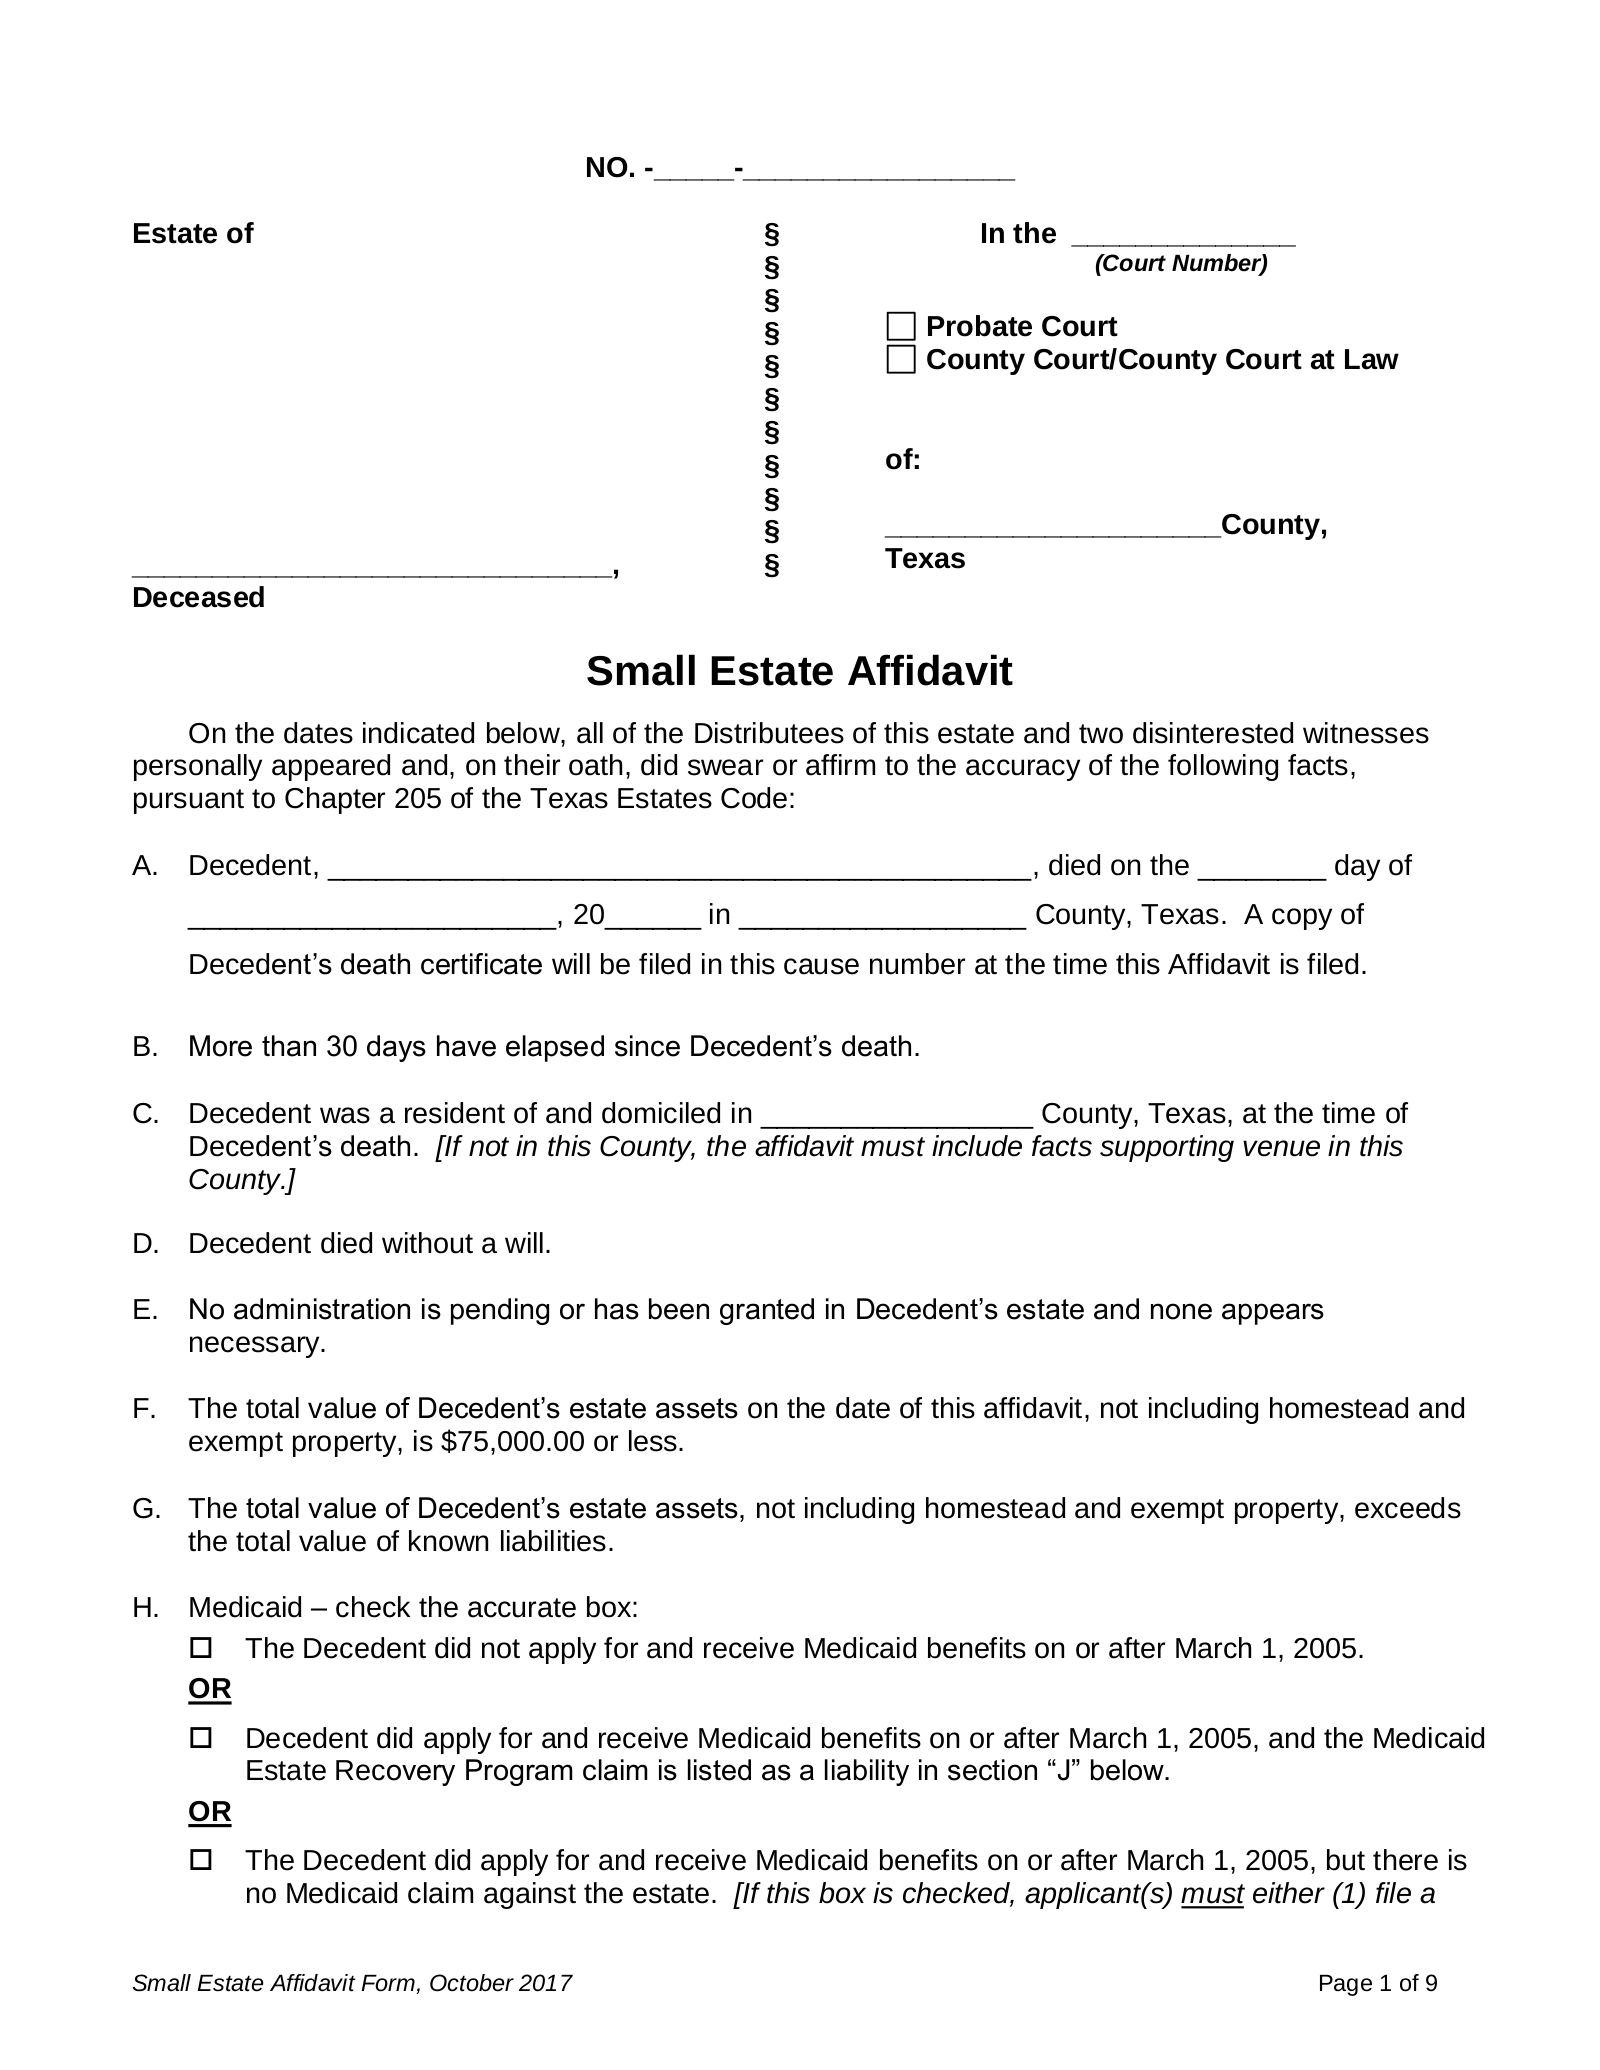 Free Texas Small Estate Affidavit Form - PDF | eForms – Free